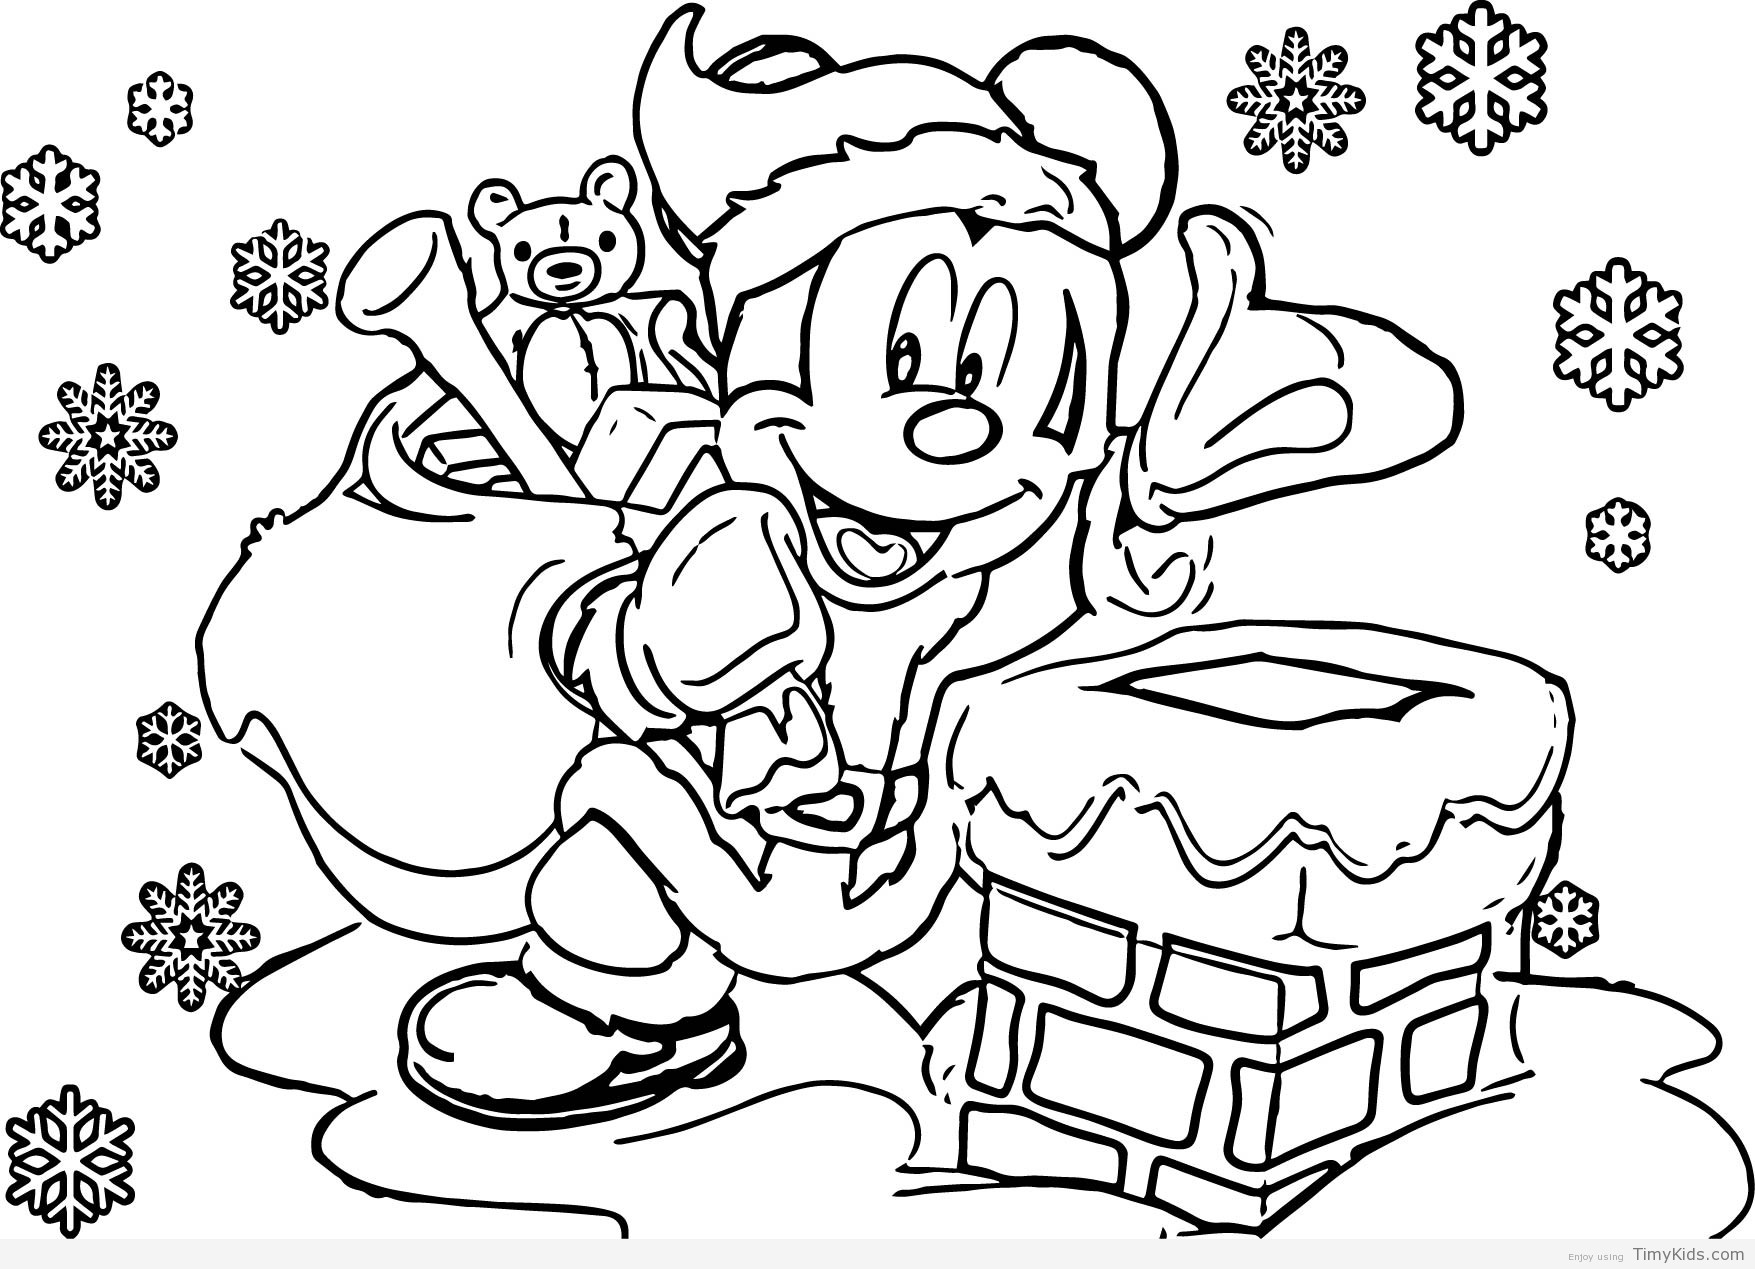 Religious Christmas Coloring Pages To Print With Color Free Printable